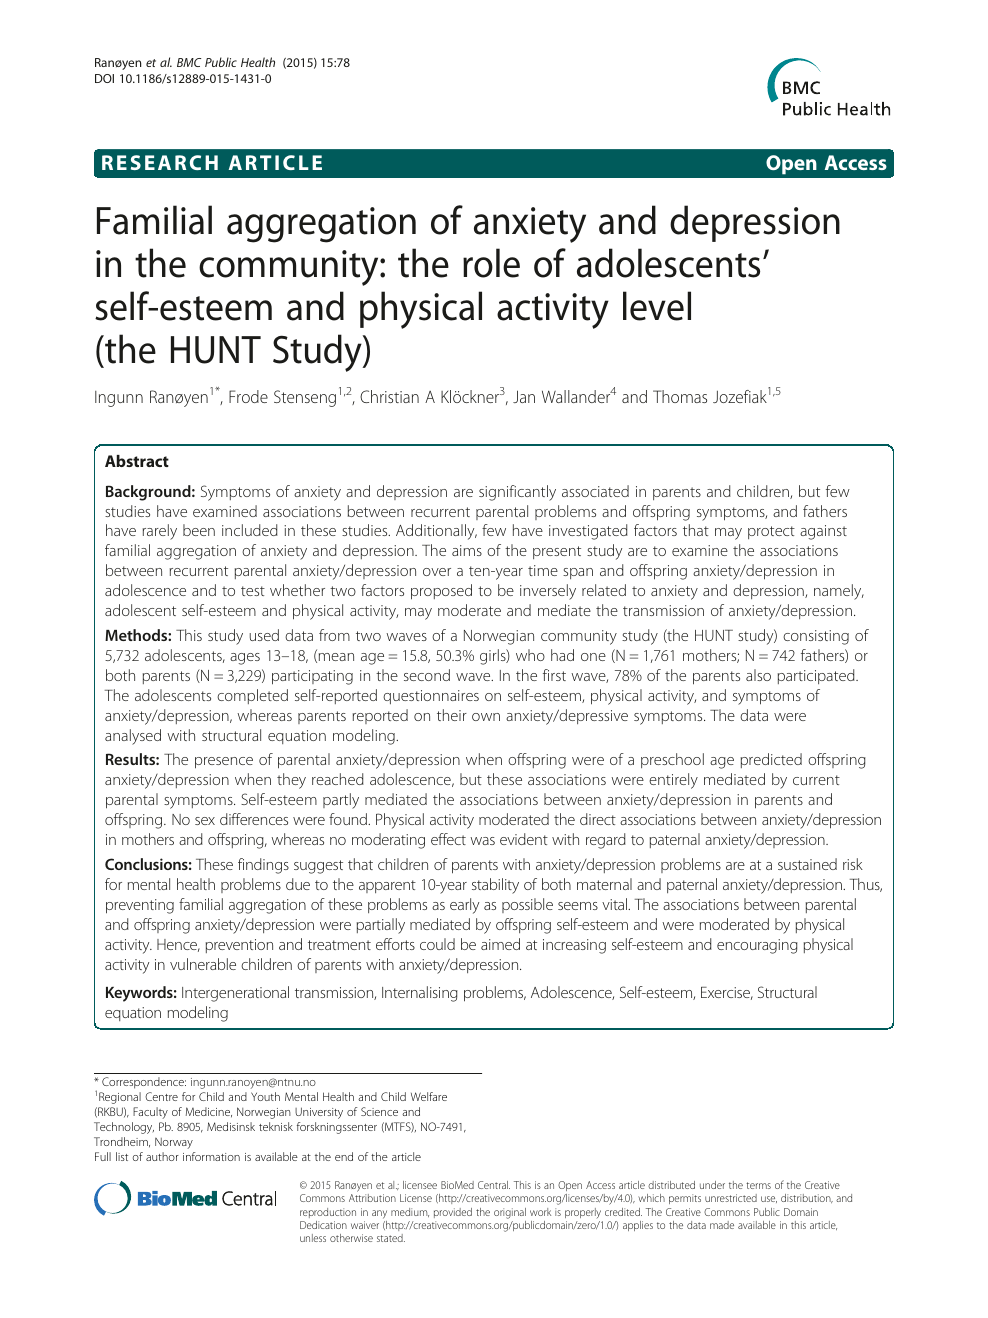 Familial aggregation of anxiety and depression in the